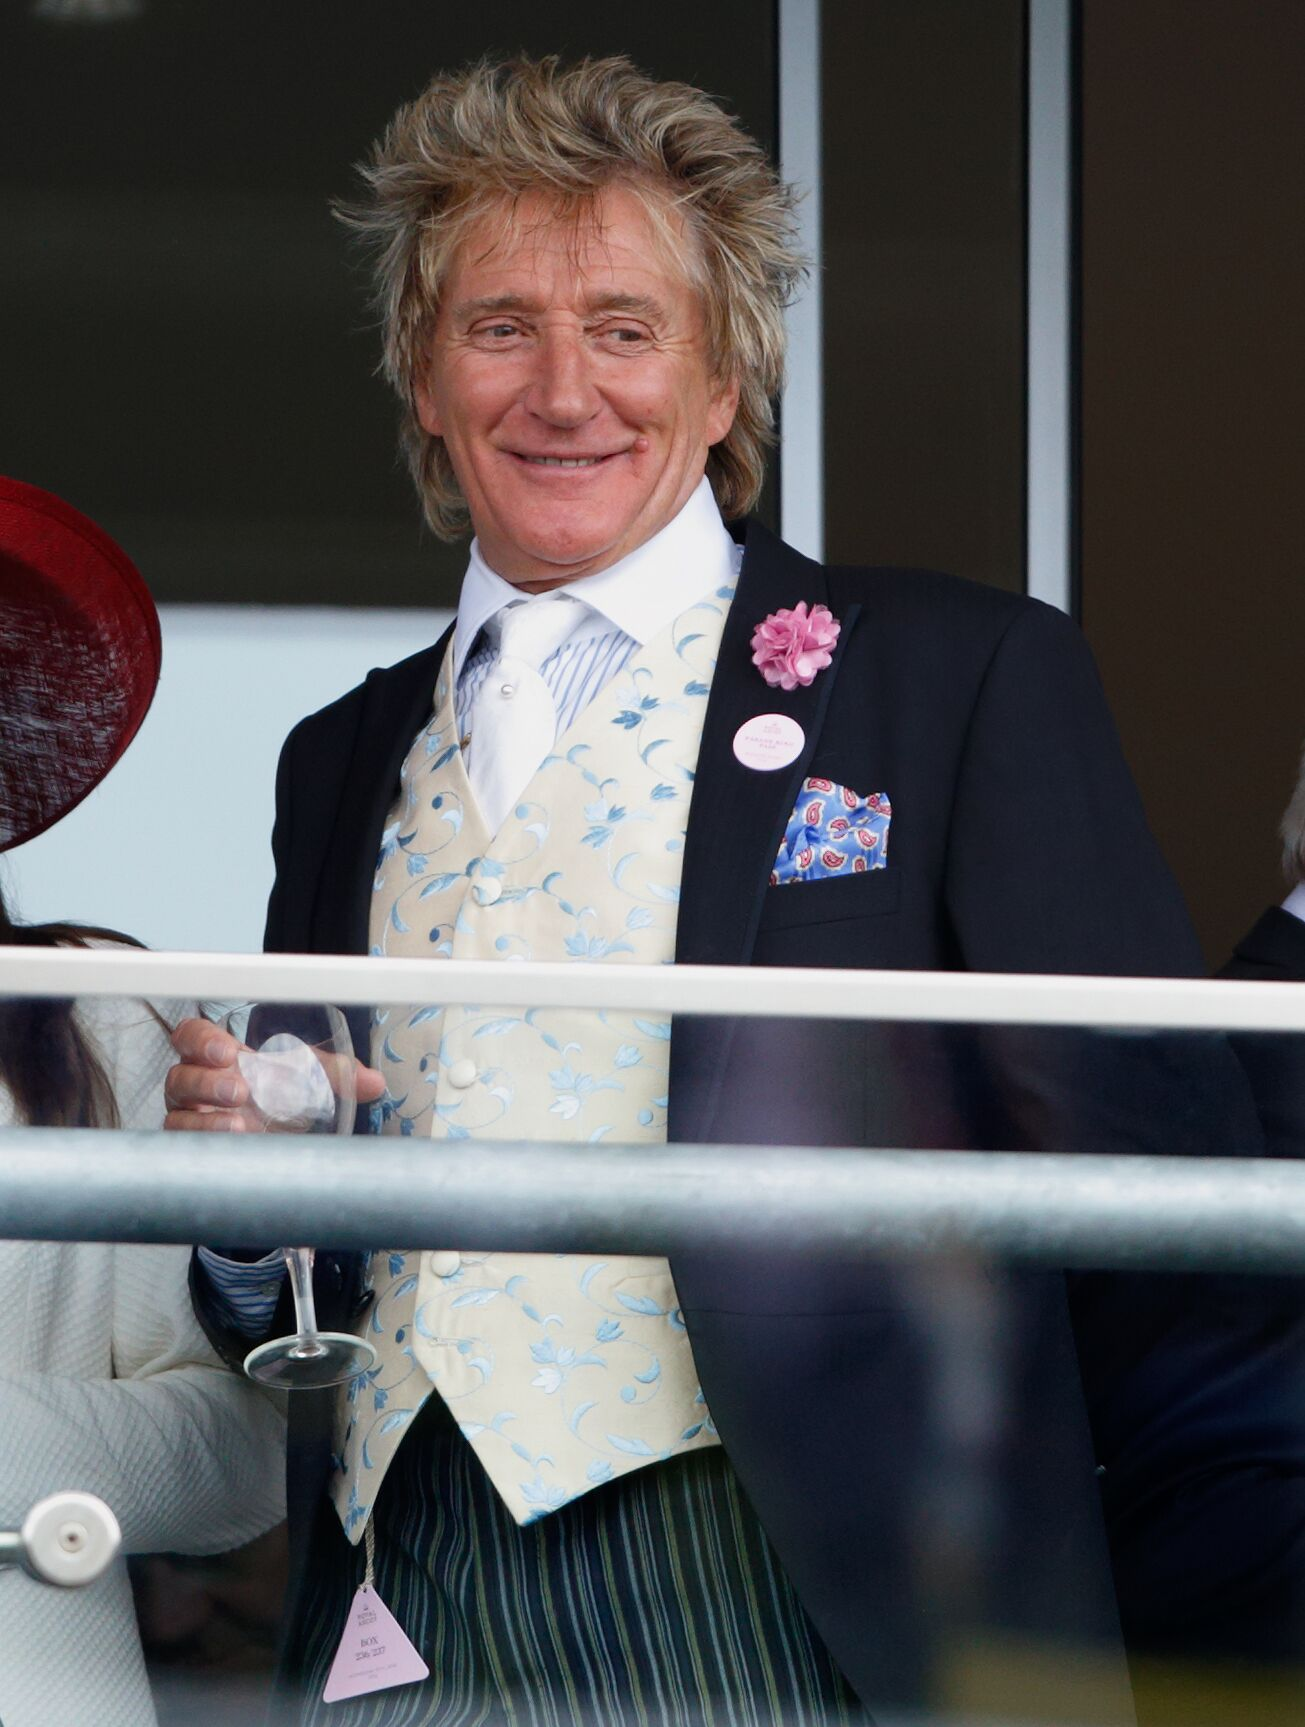 Sir Rod Stewart at the Royal Ascot at Ascot Racecourse in 2016 in England   Source: Getty Images